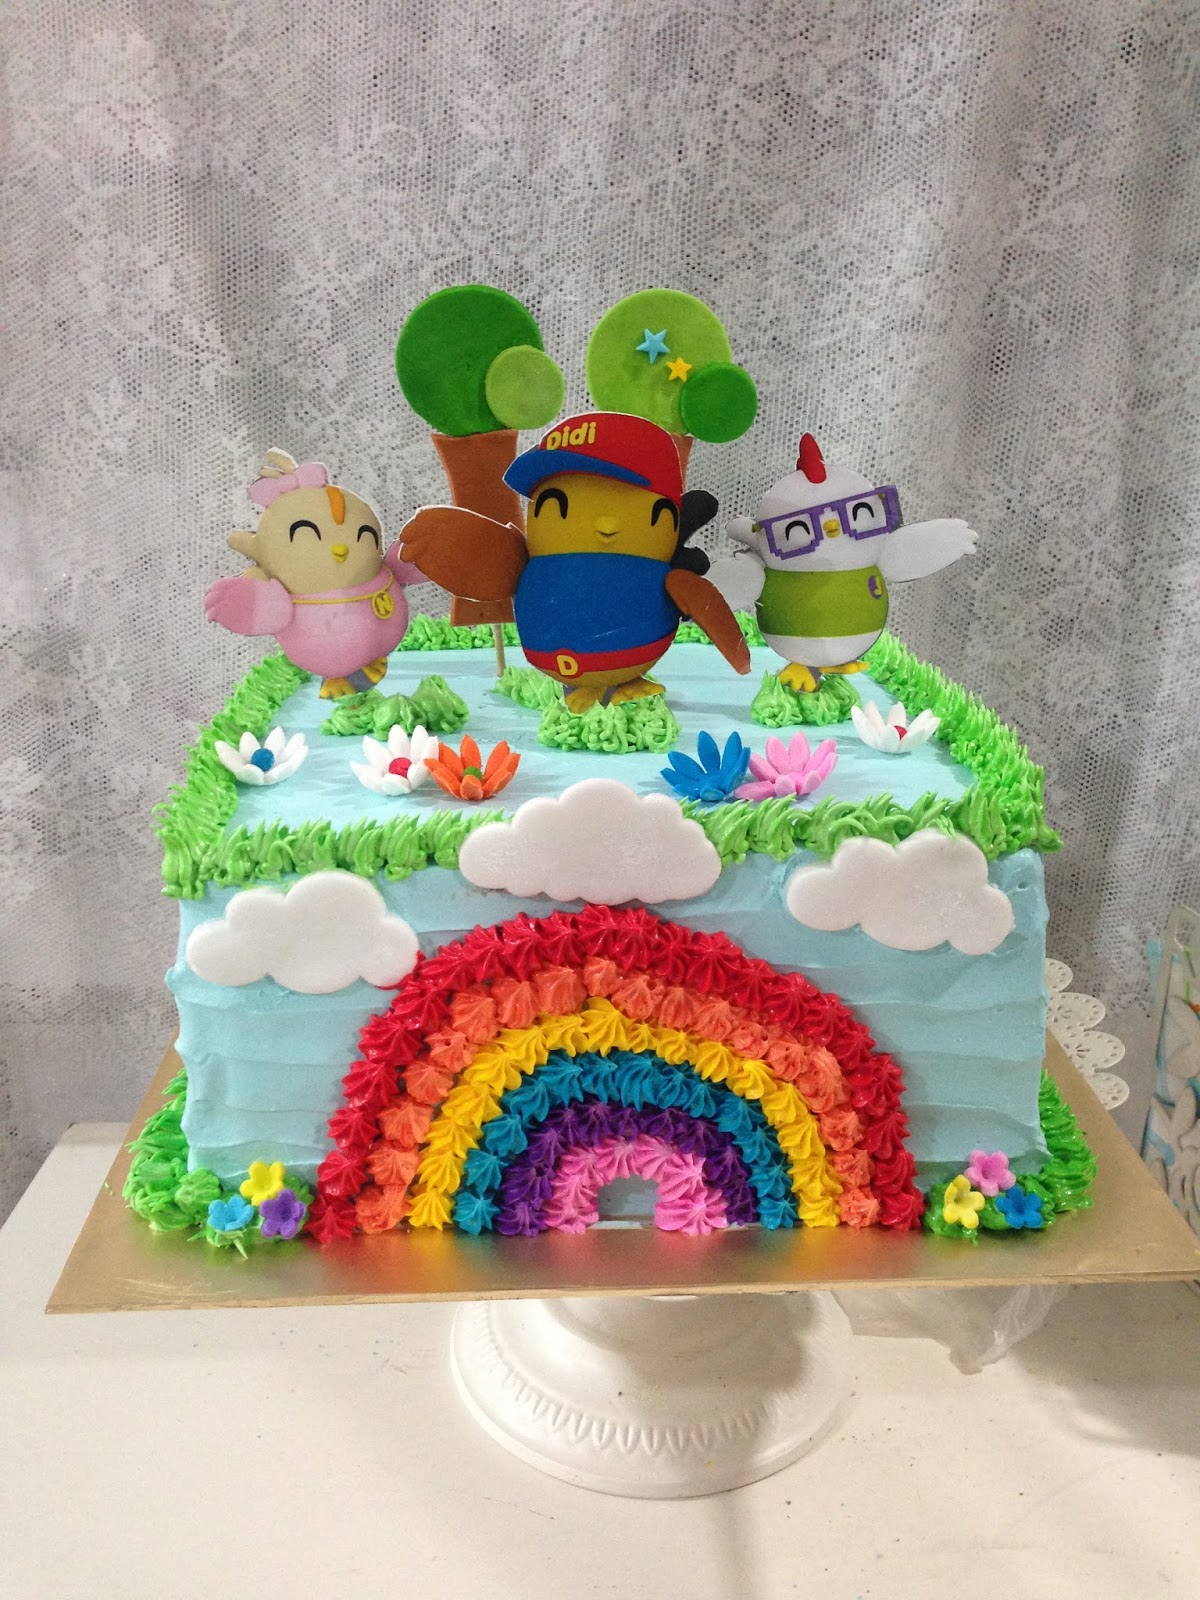 Images Of Birthday Cake For Didi : ninie cakes house: Didi & Friends Birthday Cake Theme